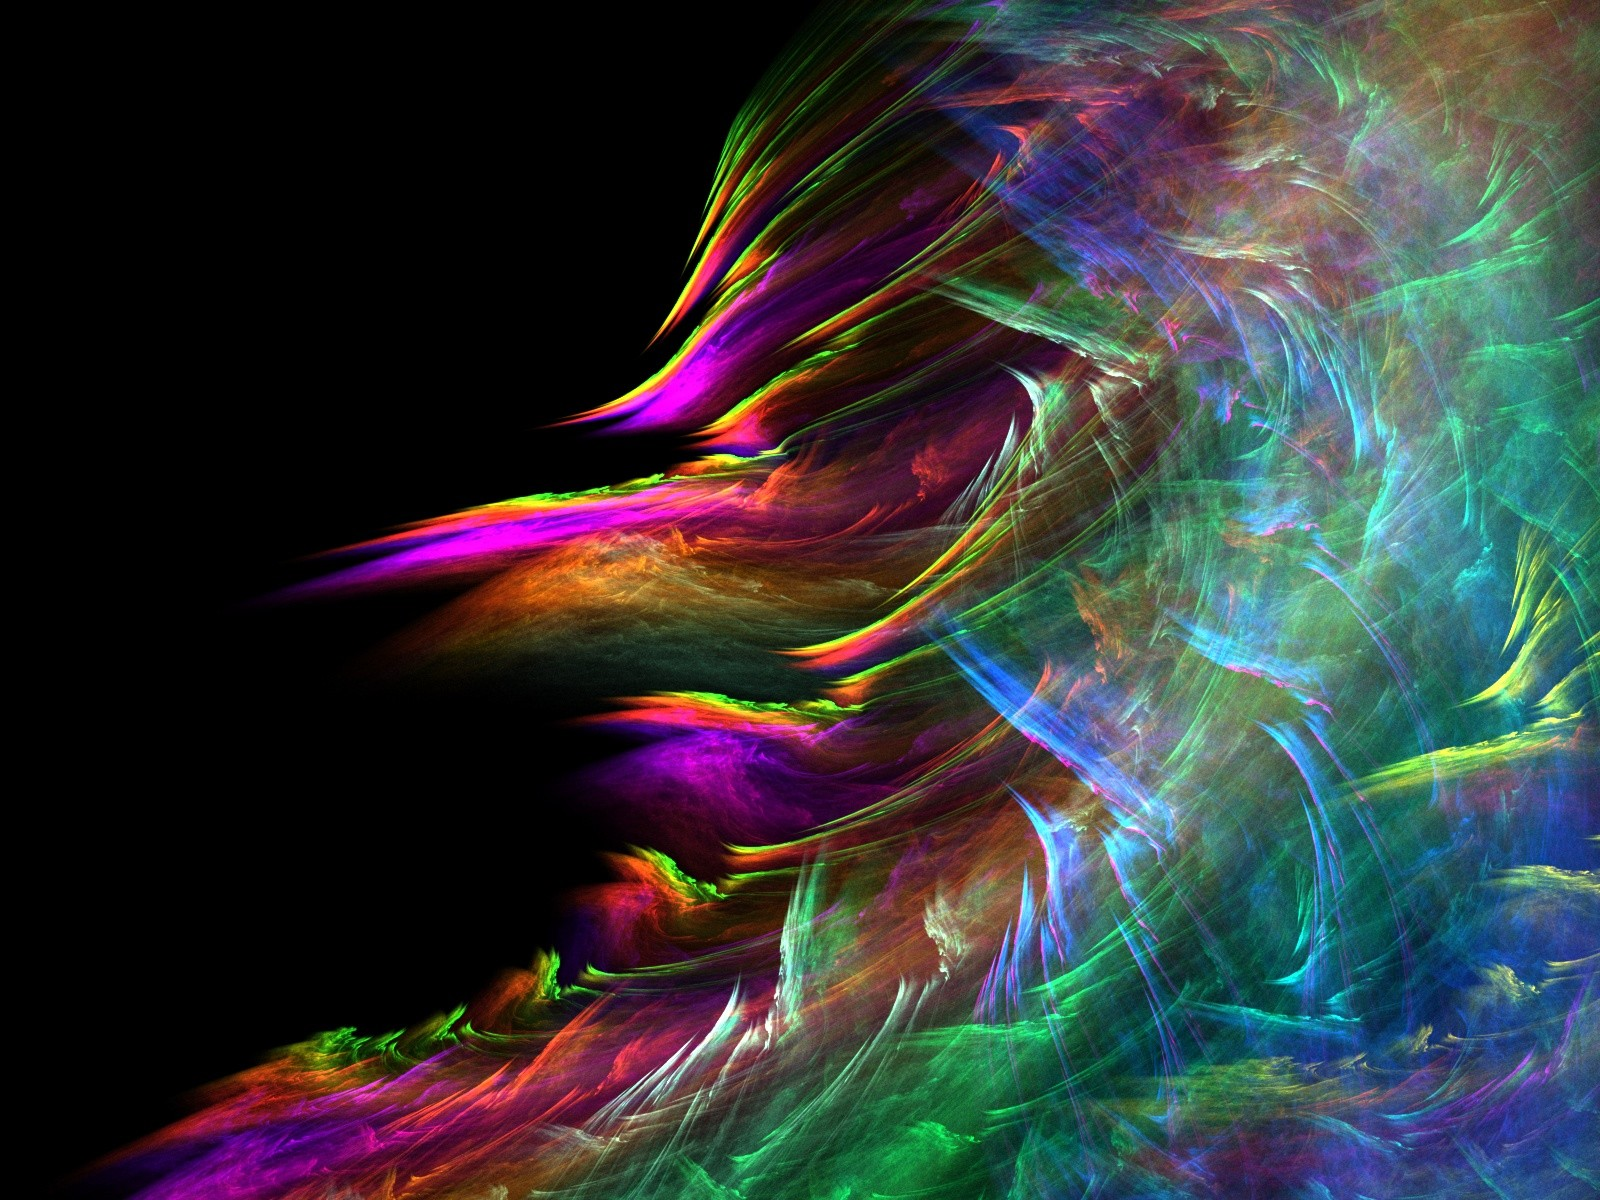 Free trippy wallpapers with unearthly spirit designfloat - Desktop wallpaper 1600x1200 ...